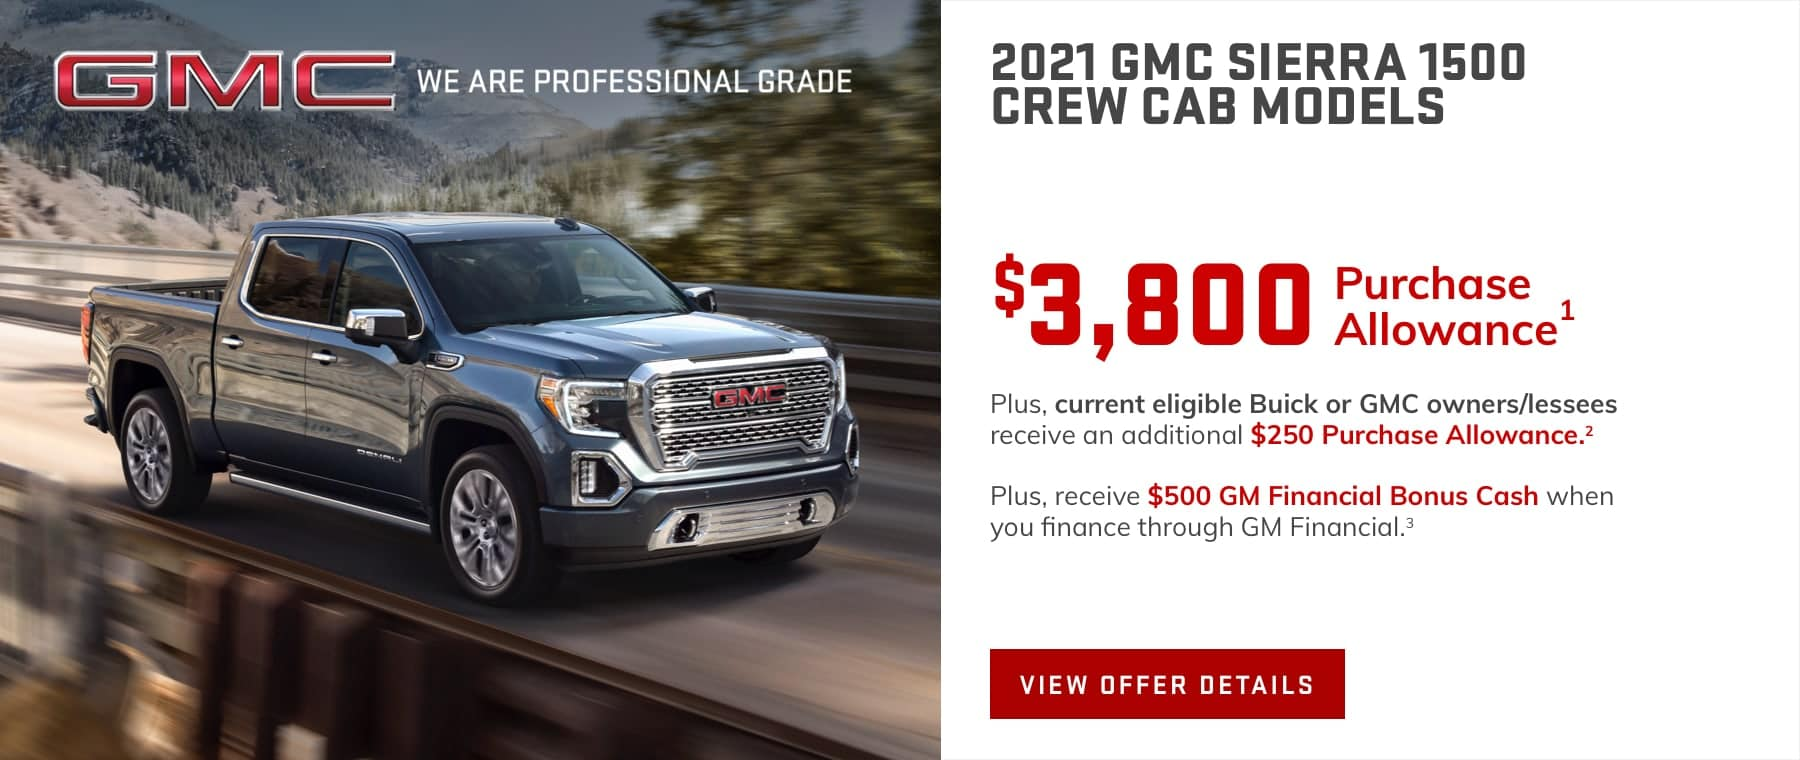 $3,800 Purchase Allowance.1 Plus, current eligible Buick or GMC owners/lessees receive an additional $250 Purchase Allowance.2 Plus, receive $500 GM Financial Bonus Cash when you finance through GM Financial.3